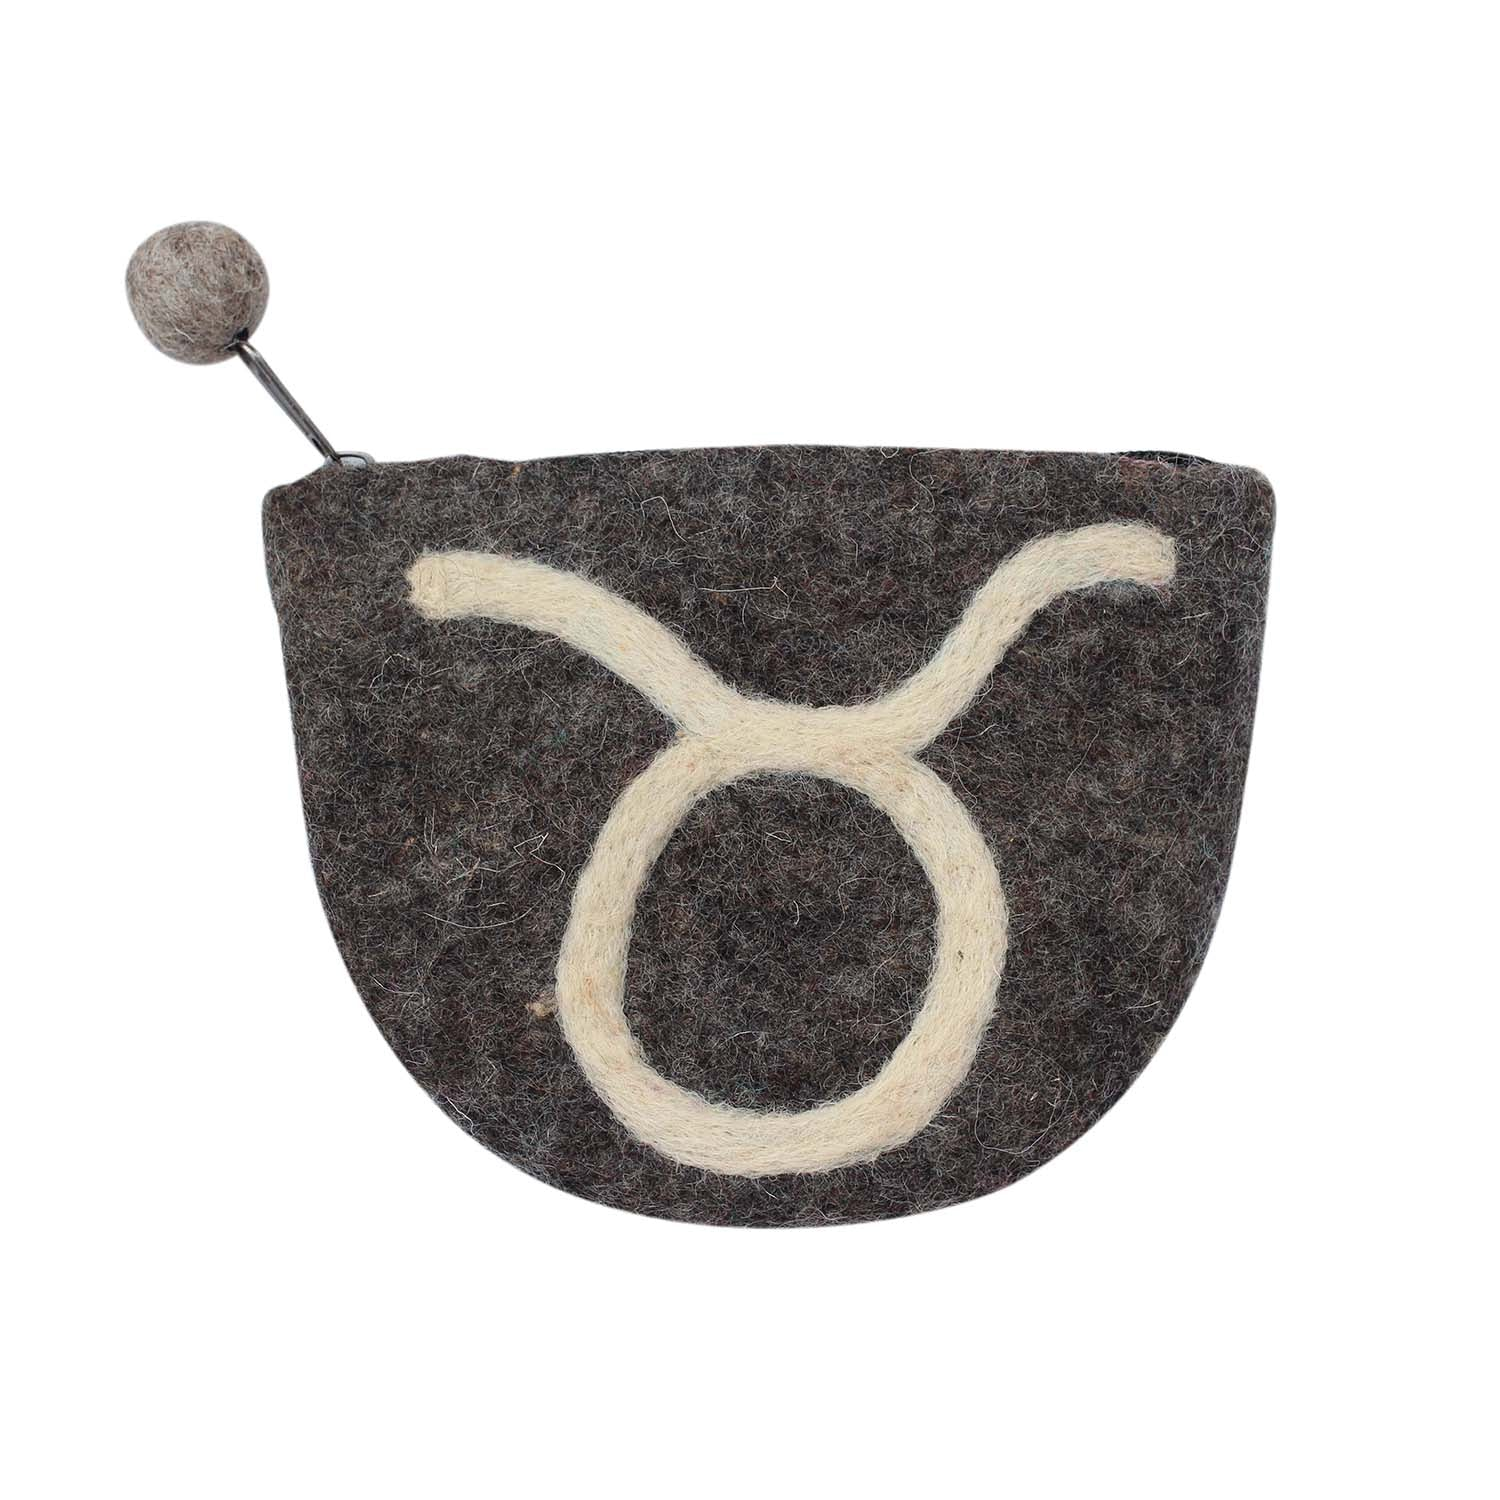 Hand Crafted Felt Pouch from Nepal: Zodiac, Taurus